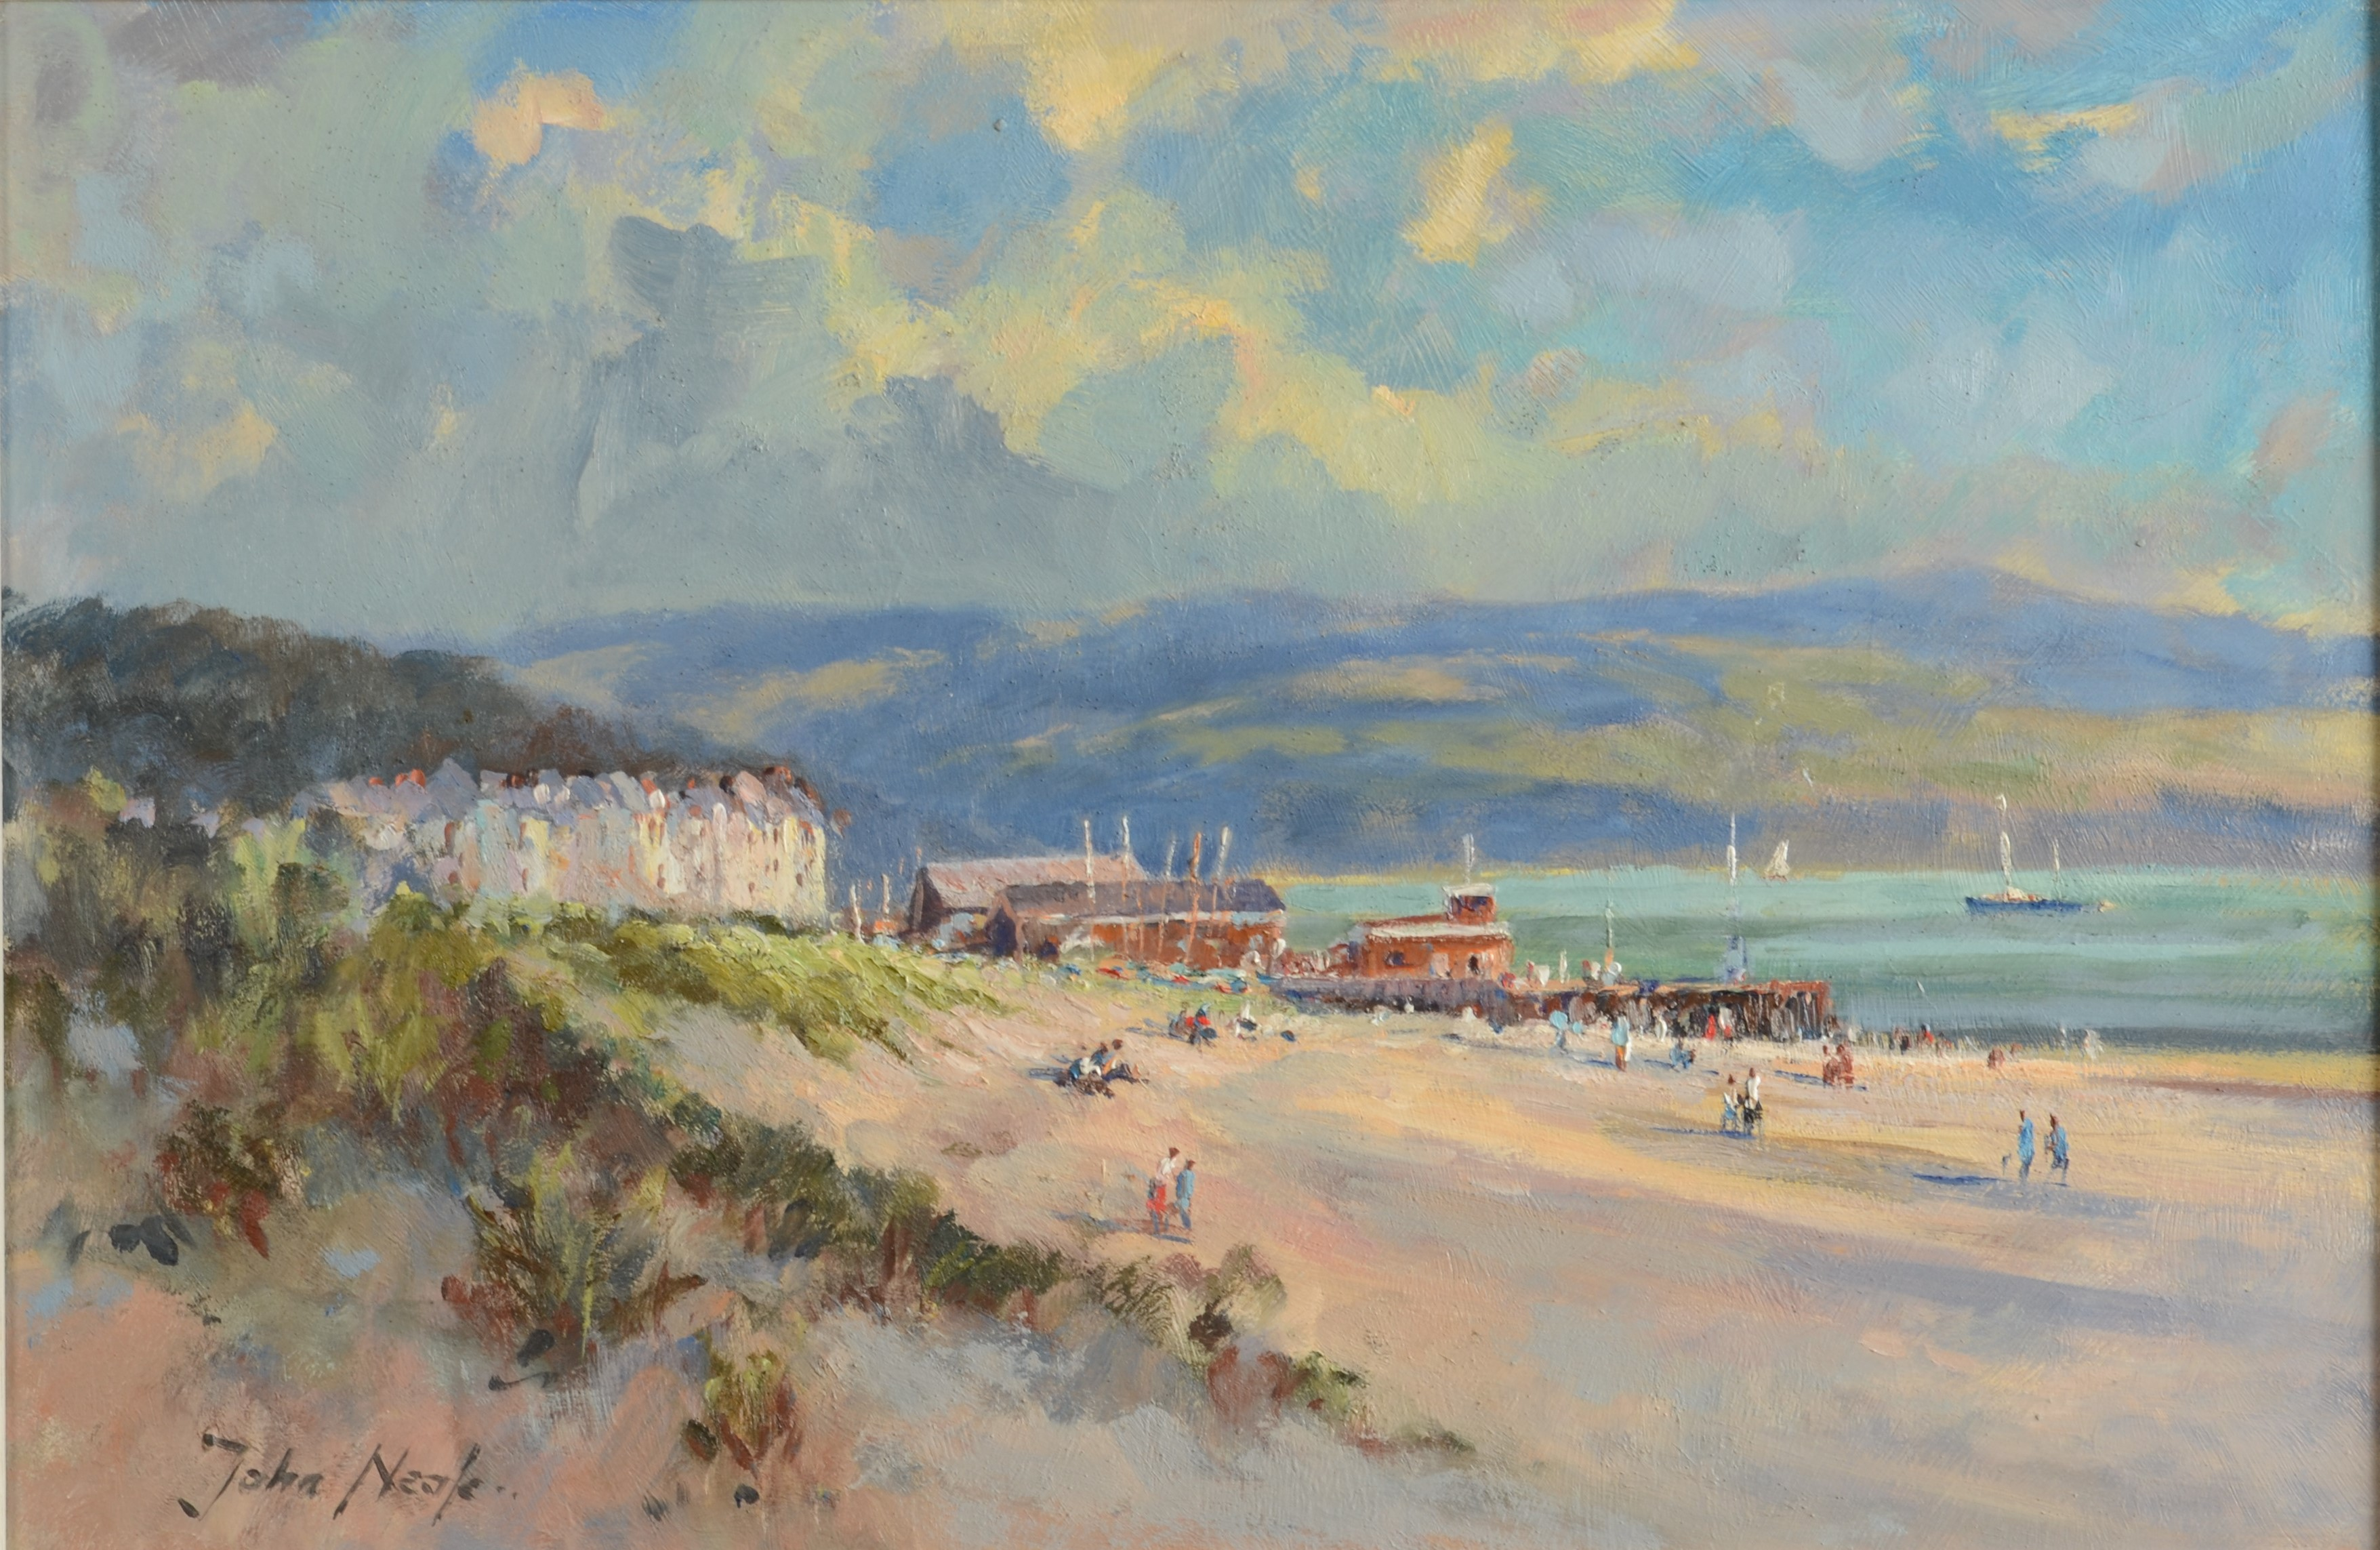 Lot 38 - JOHN NEALE Aberdovey Beach Oil on board Signed 30 x 45 cm Condition report: This is